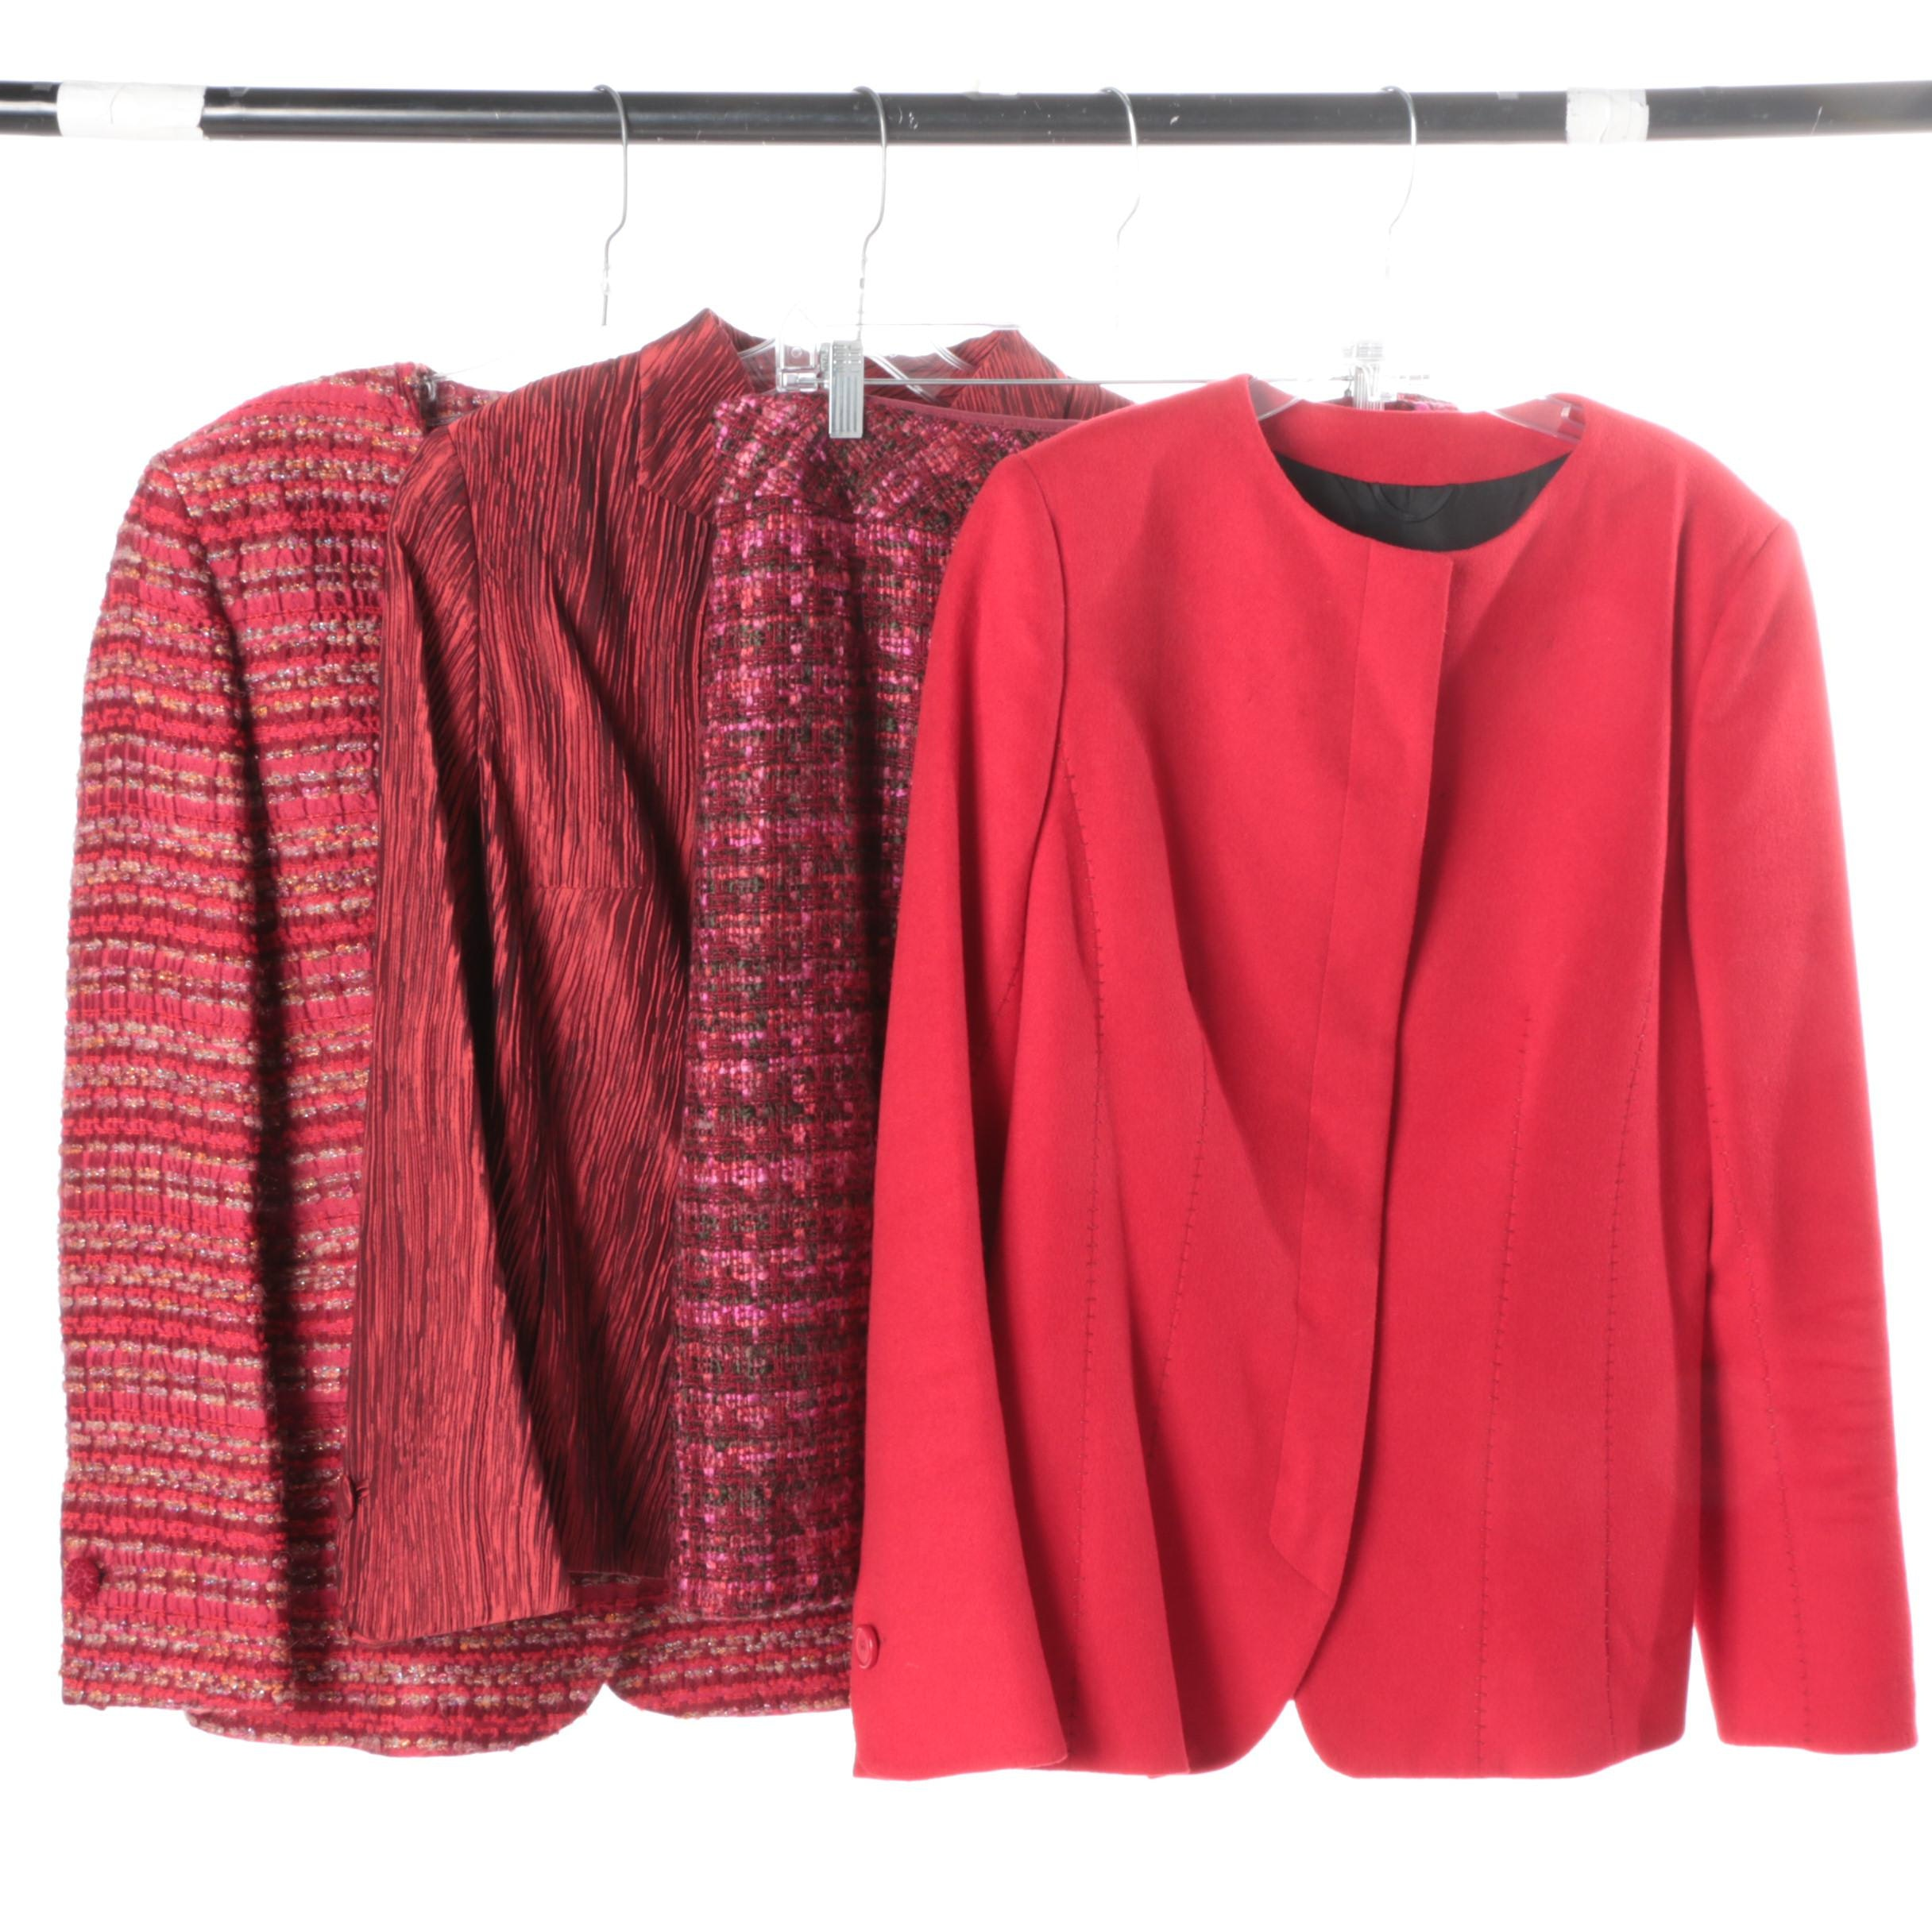 Women's Blazers and Skirt from Algo and Clearwater Creek